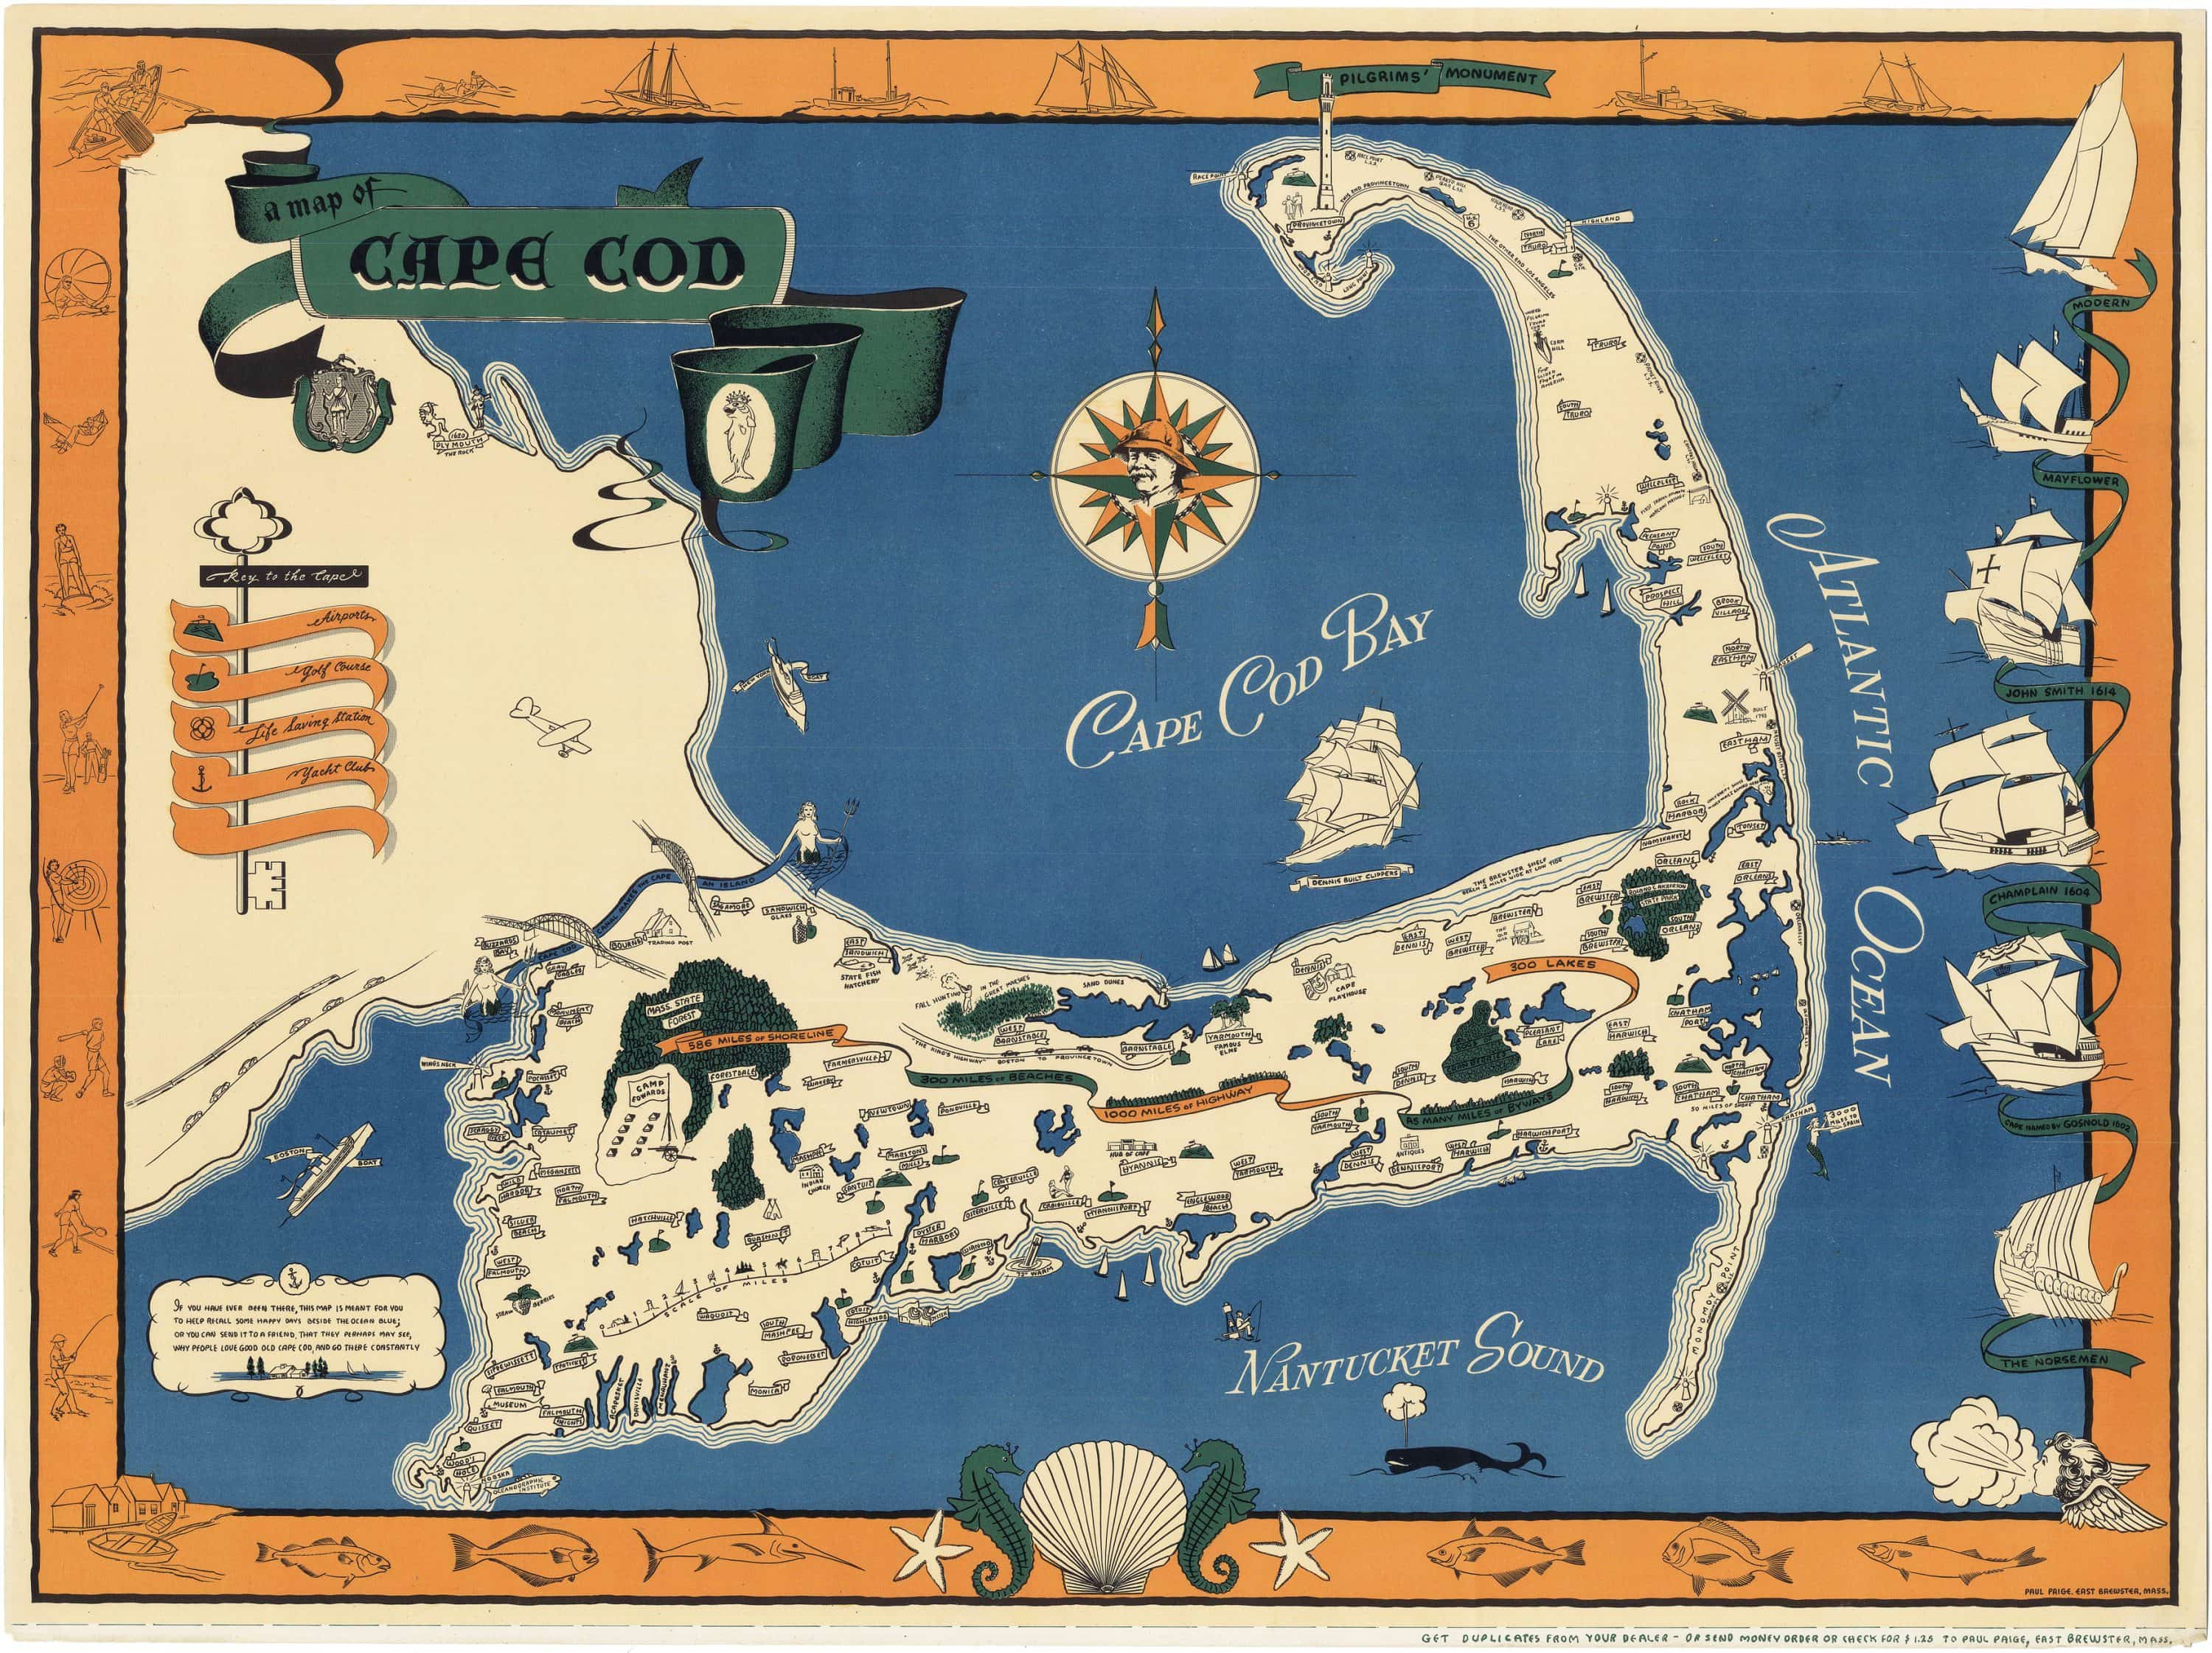 Vibrant pictorial map of Cape Cod